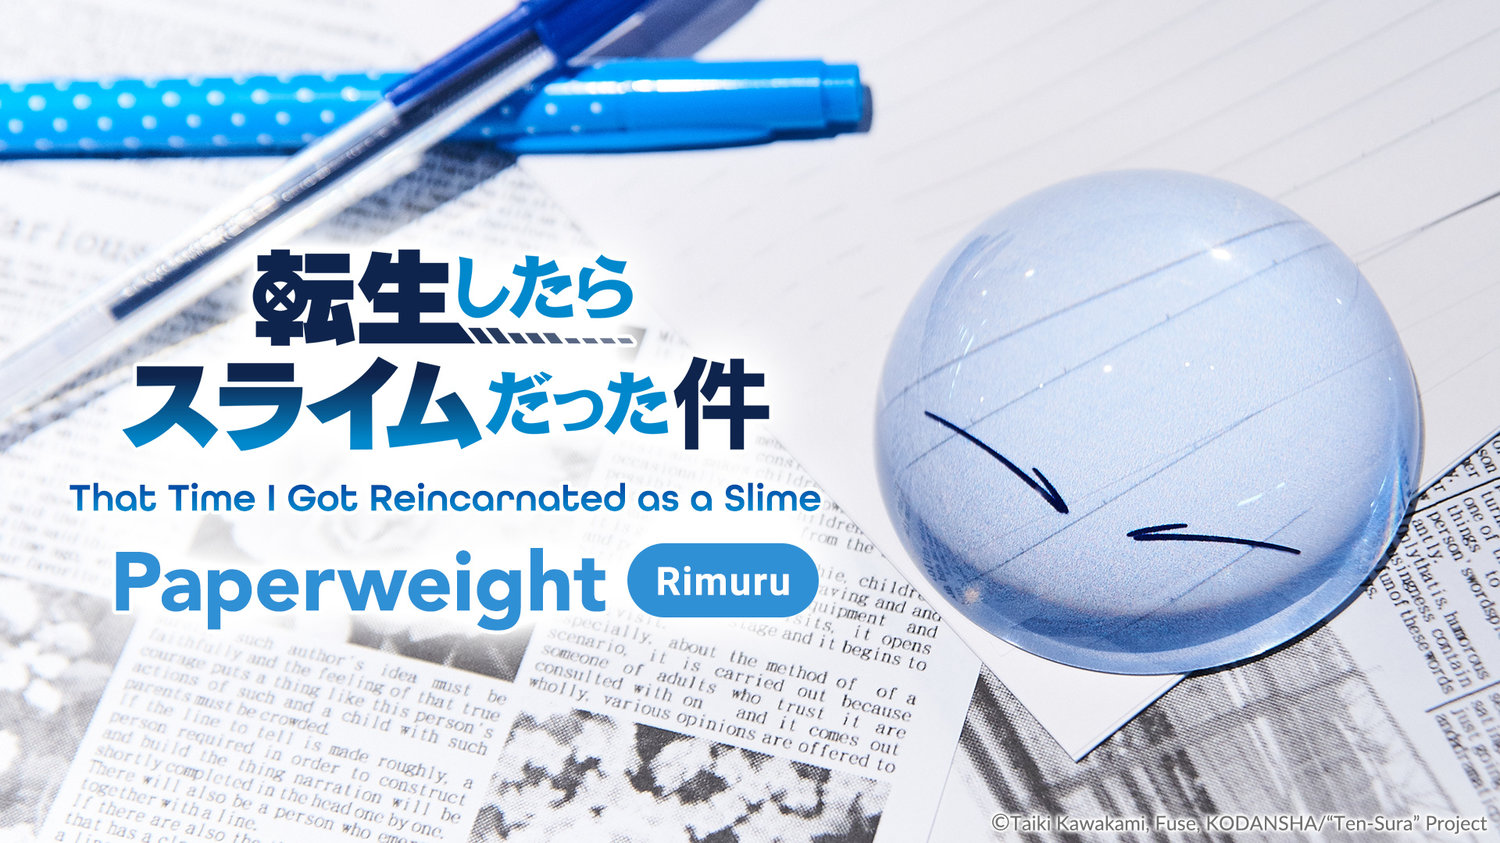 That Time I Got Reincarnated as a Slime Rimuru Paperweight